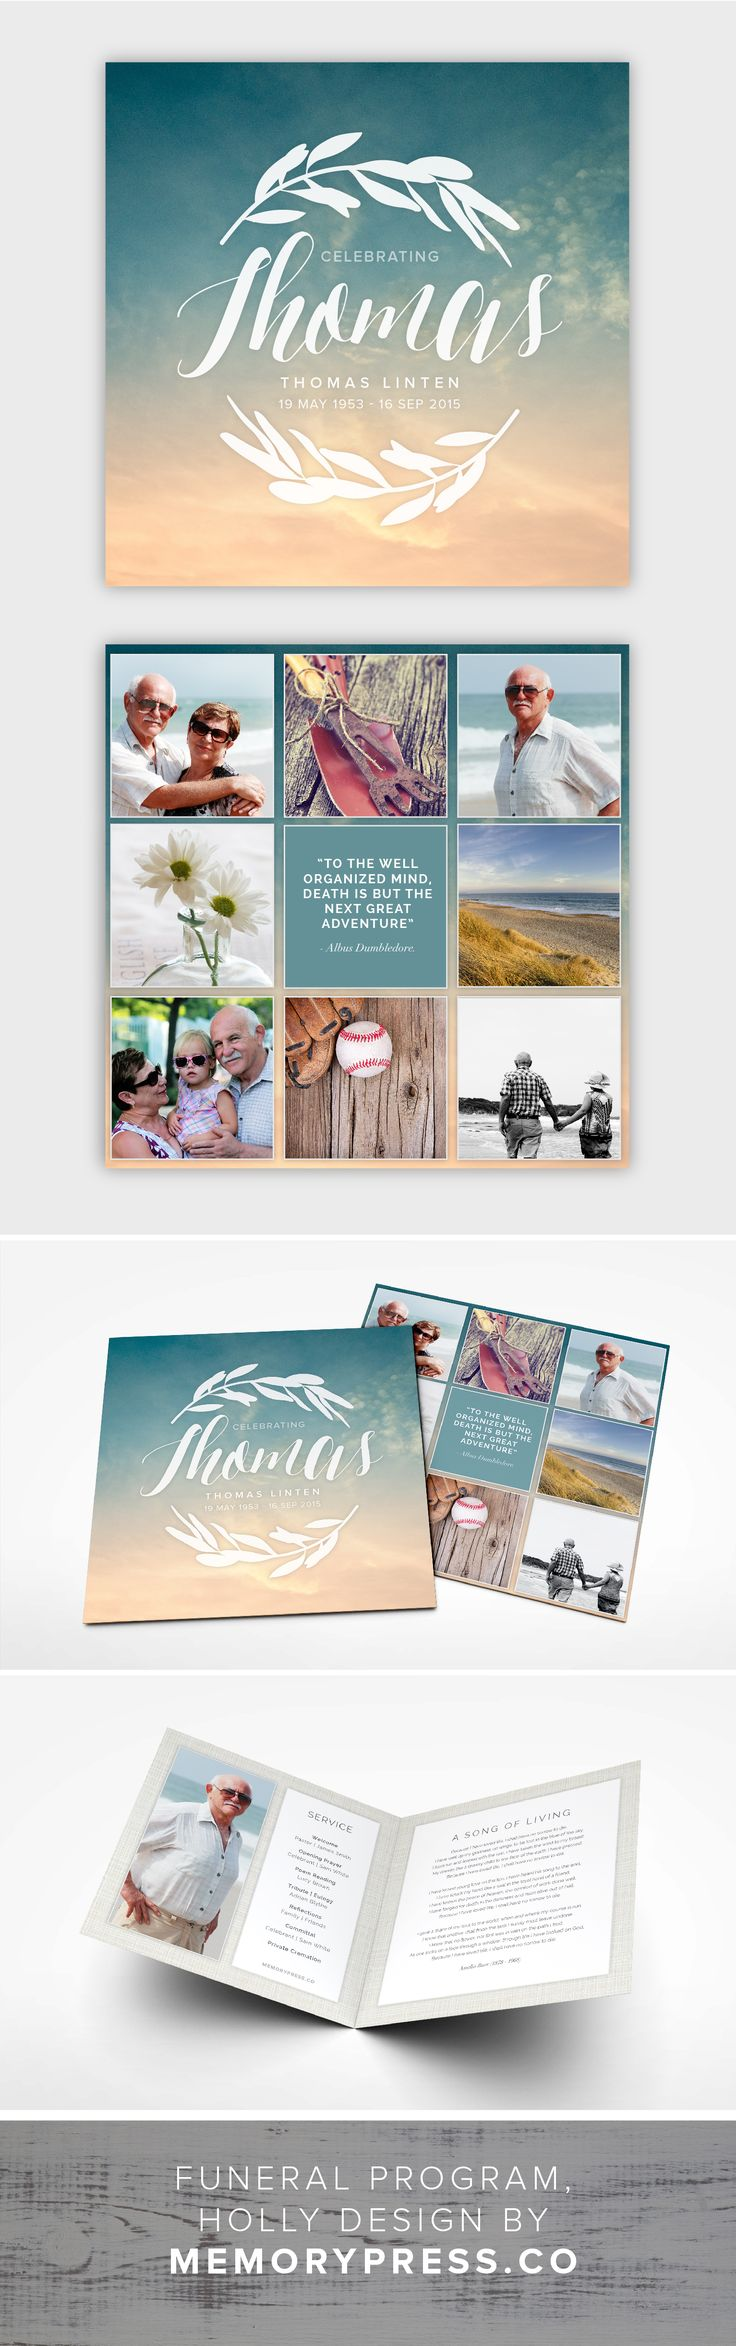 Holly funeral program template, ocean/beach theme. Customised by a professional Graphic Designer for only $99.90. Designed by Memory Press, available at memorypress.co